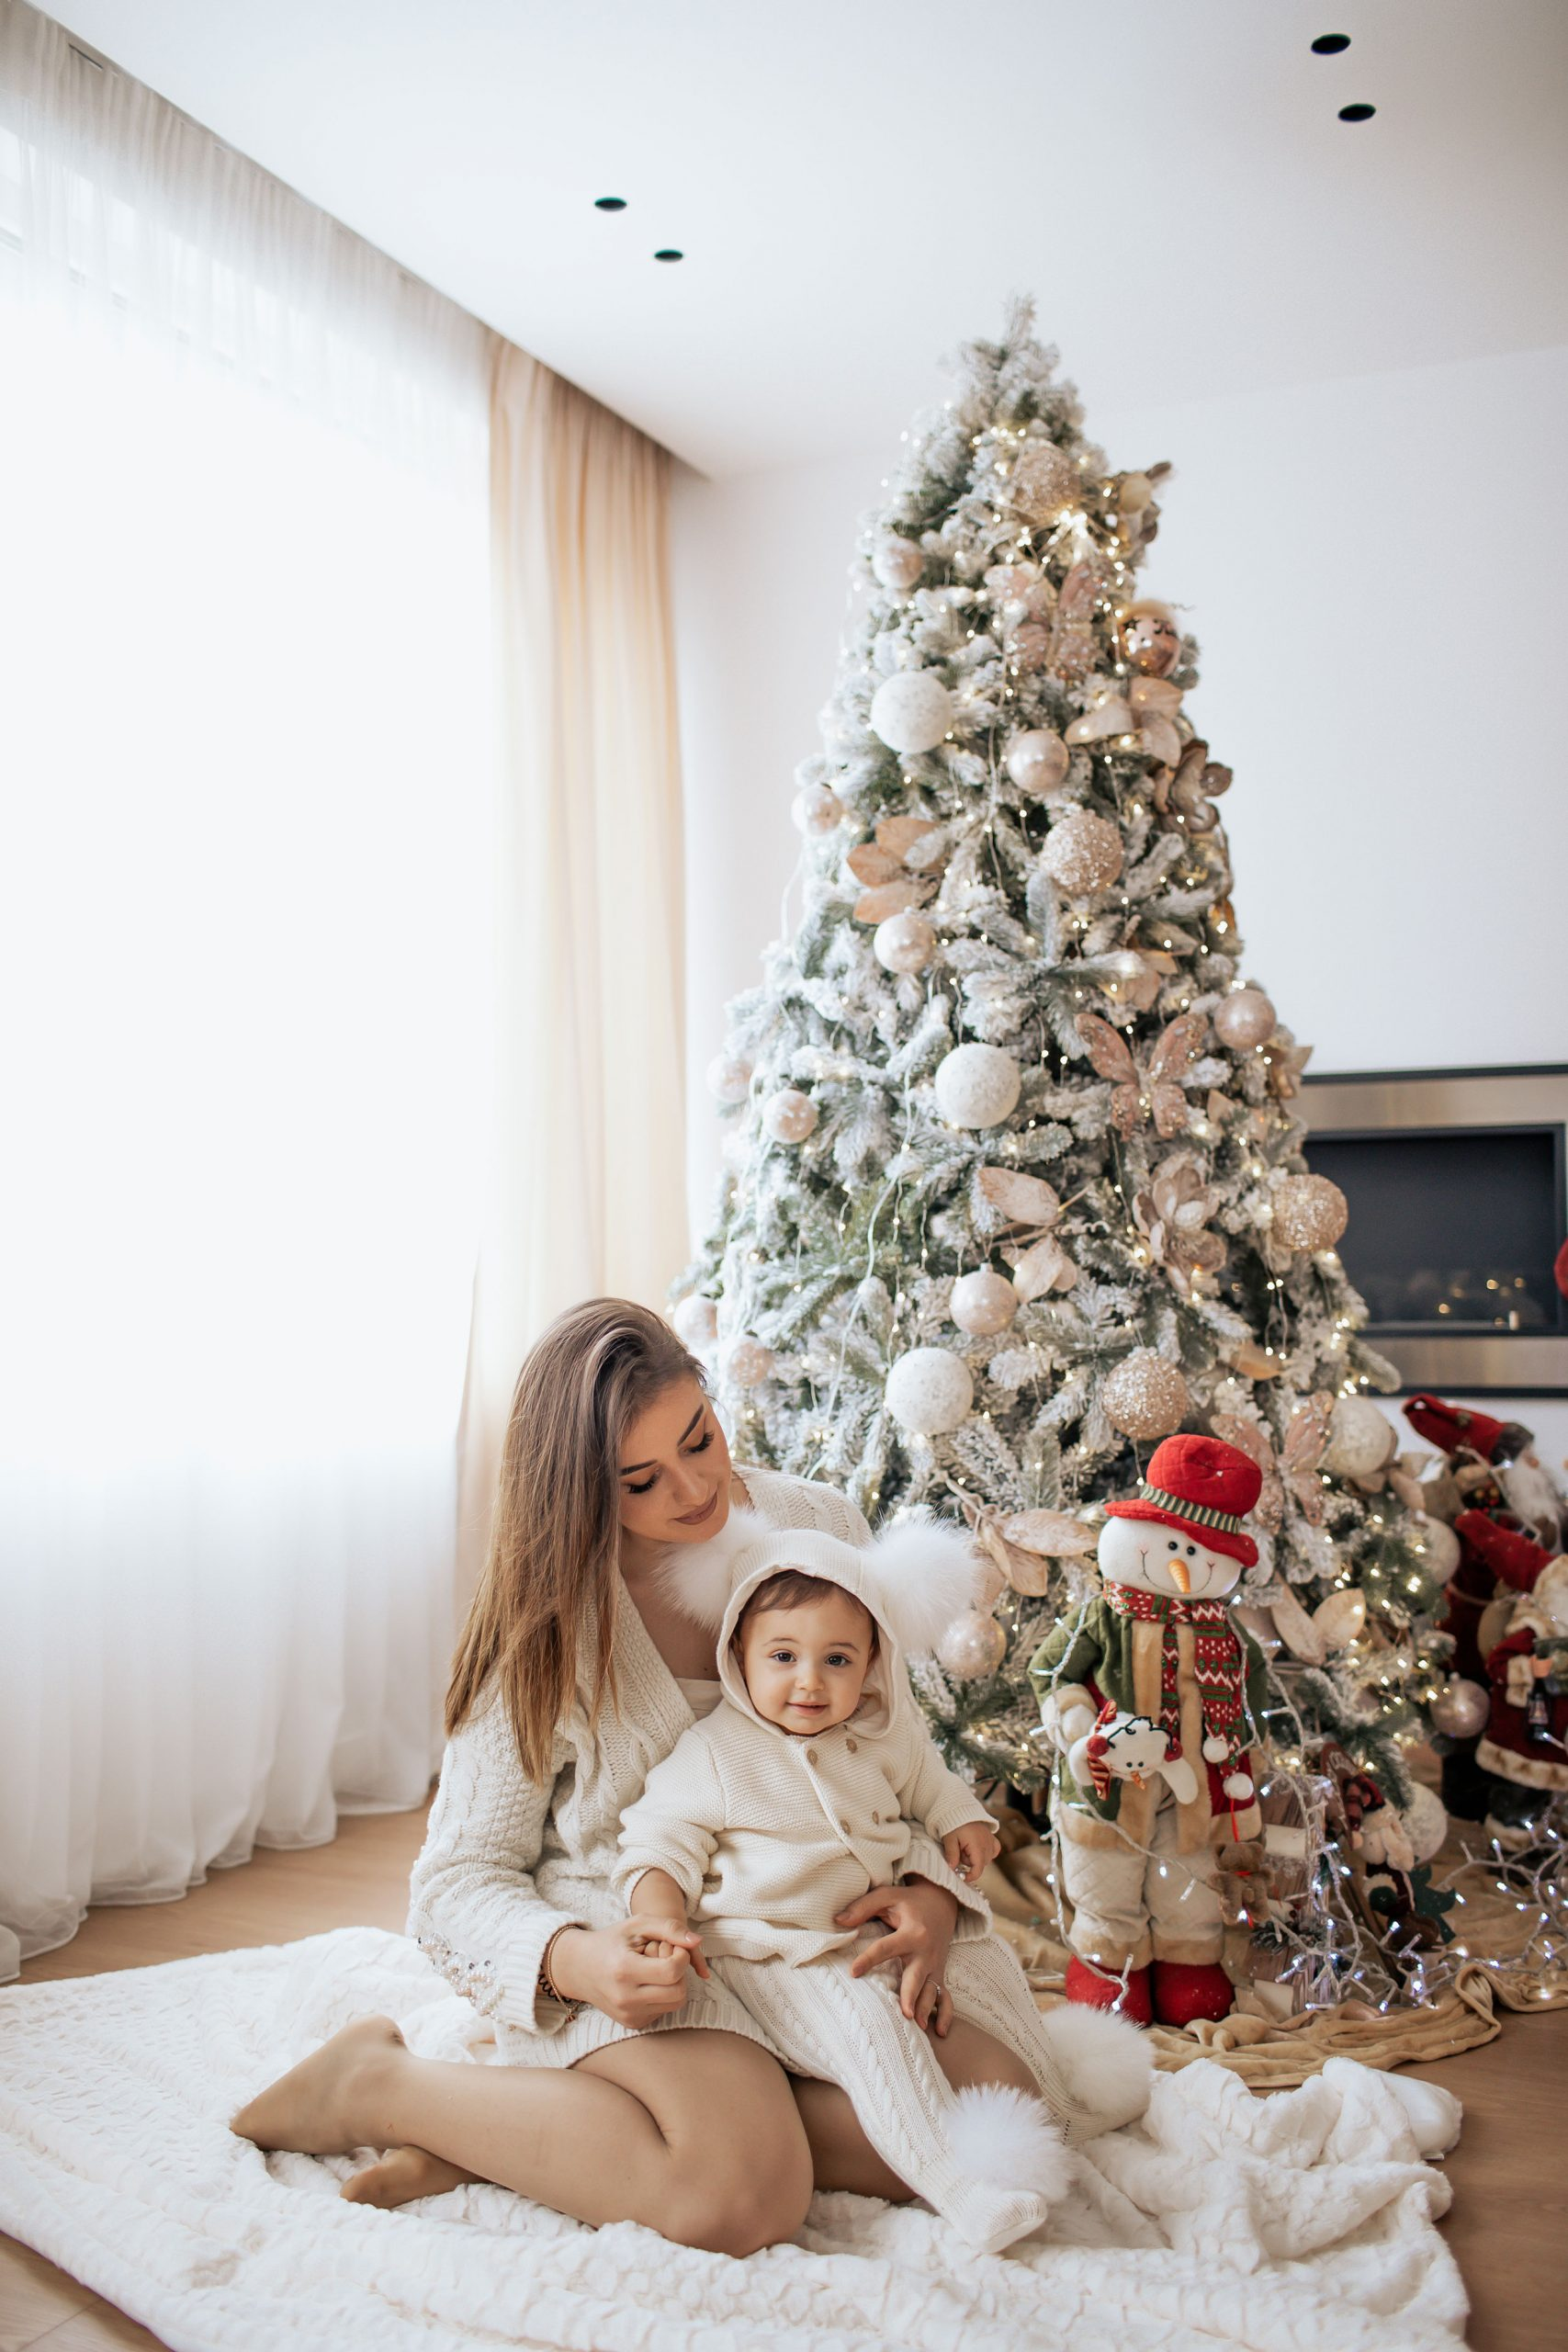 Mom and daughter posing near the Christmas tree wearing white outfits